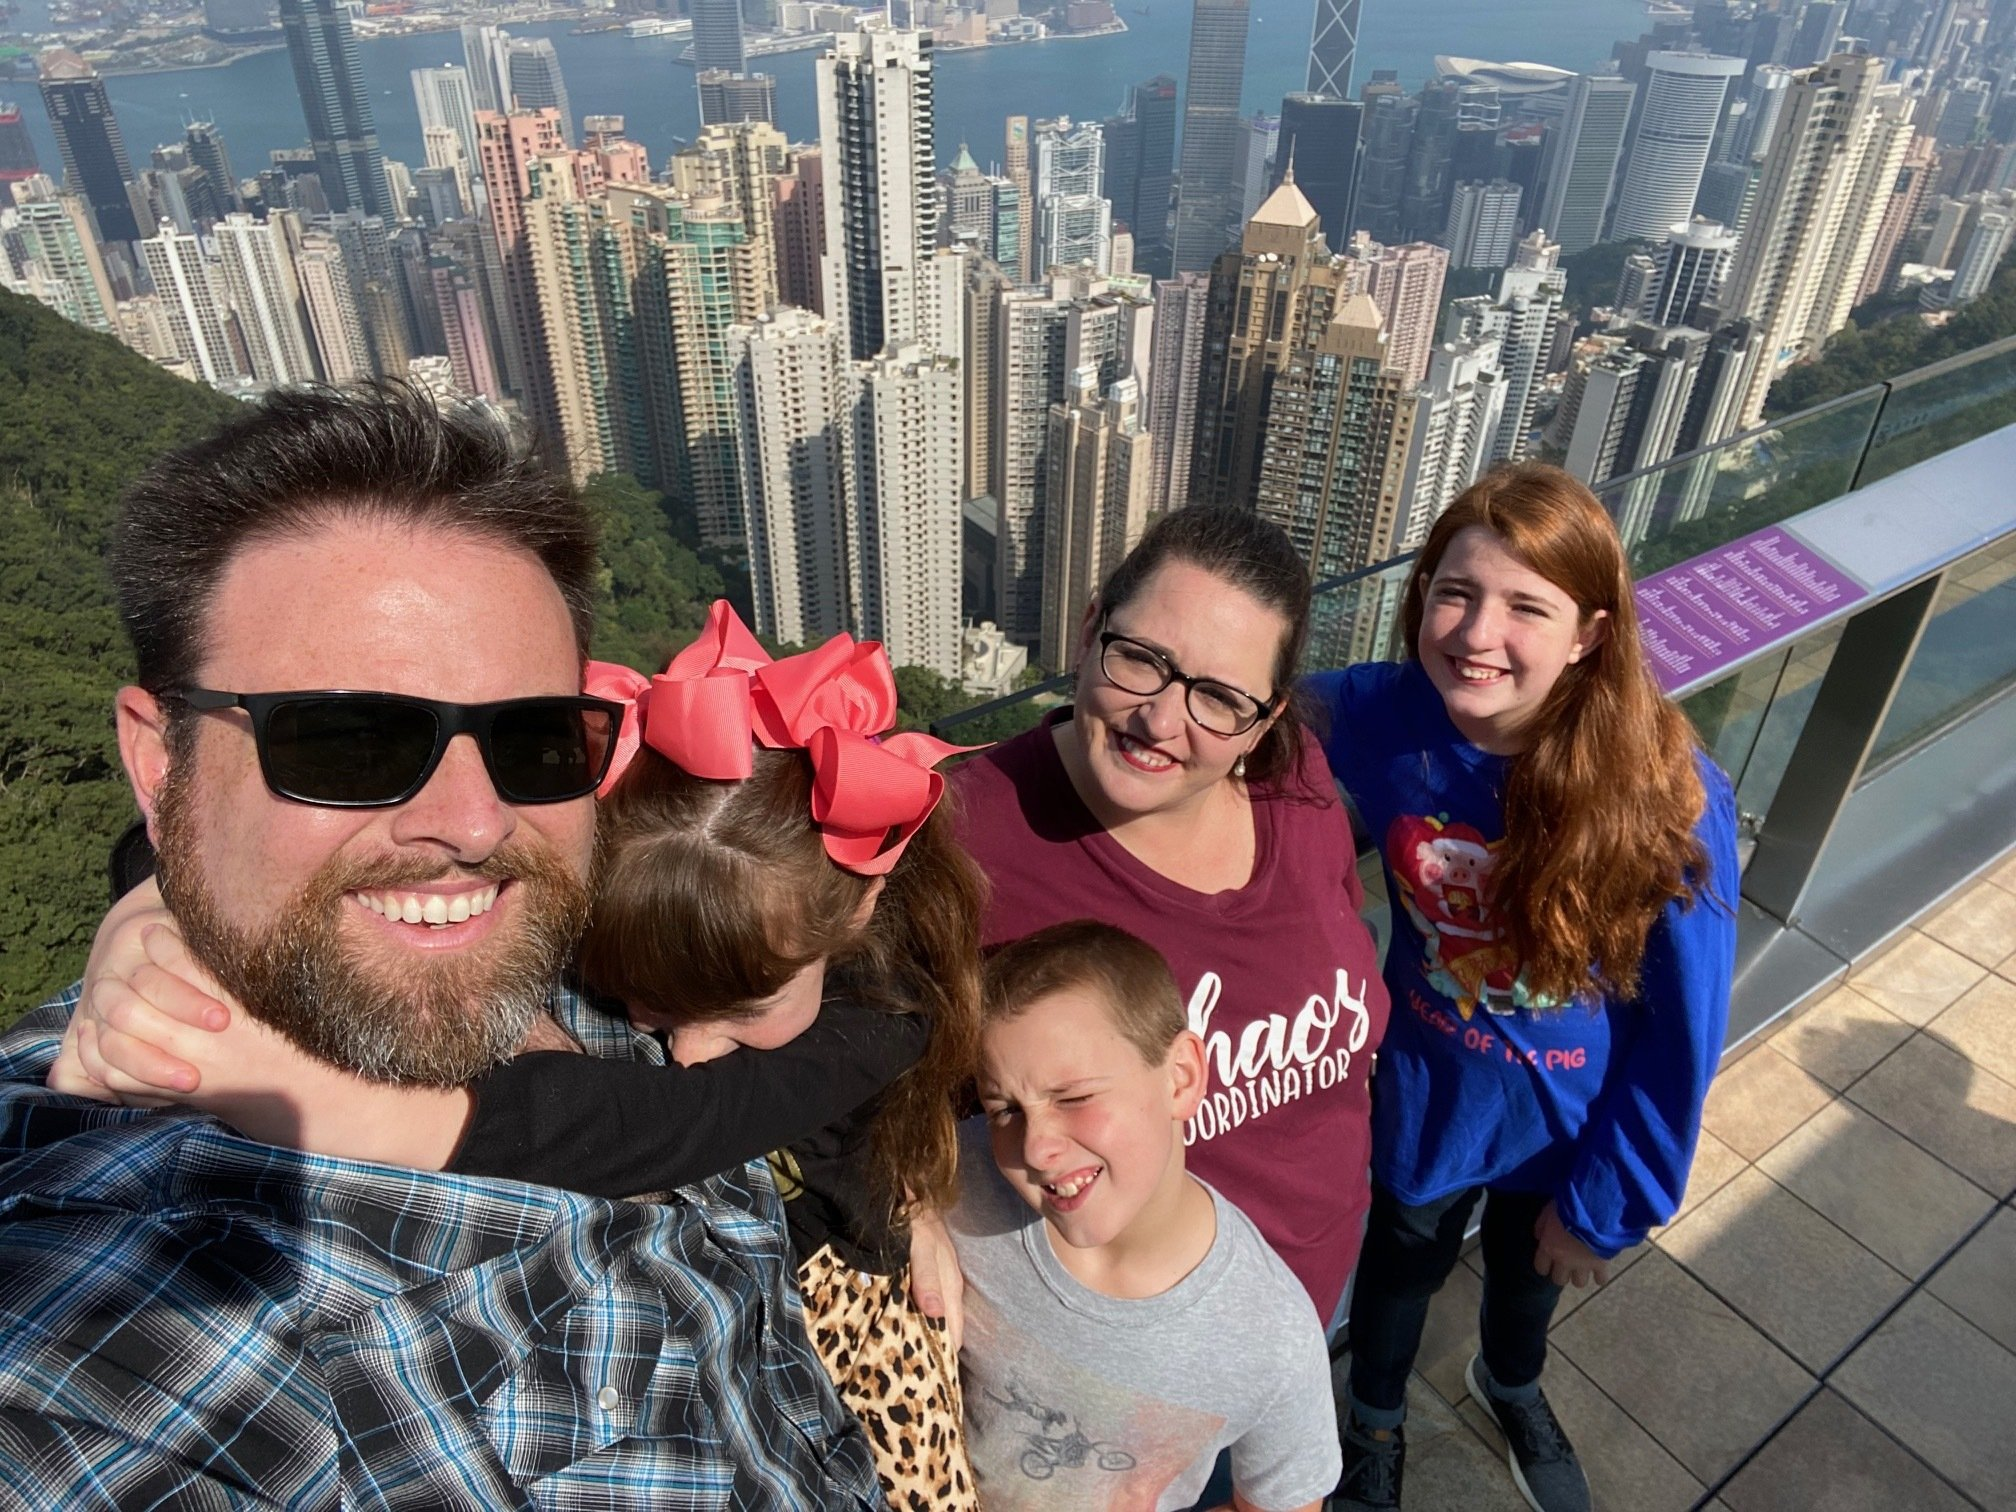 Jeremiah takes a selfie with his family in Hong Kong, Korea.